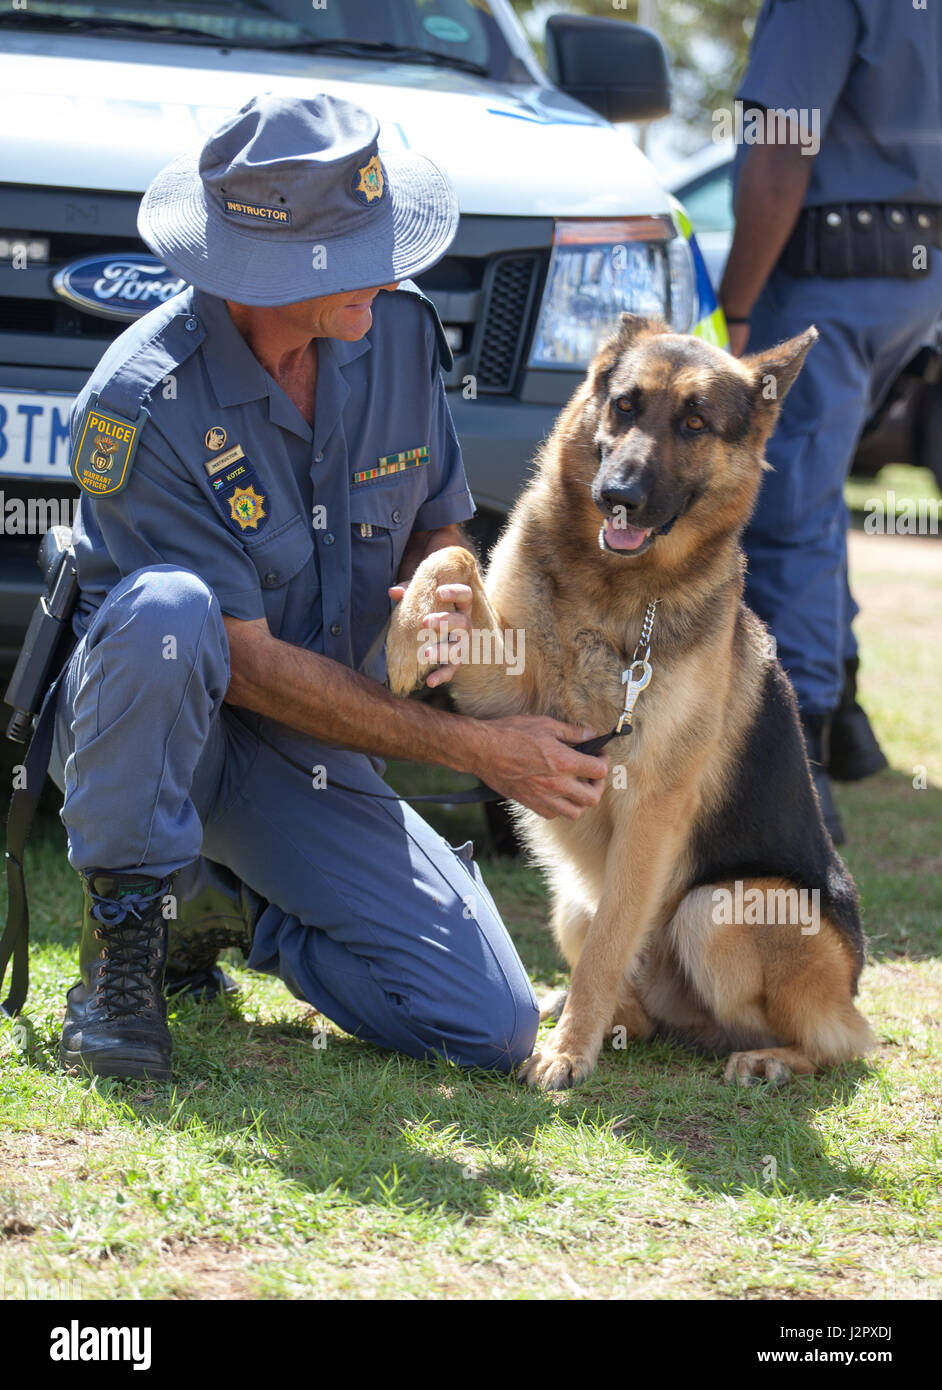 Johannesburg south africa april 2017 south african police force police man and k9 german